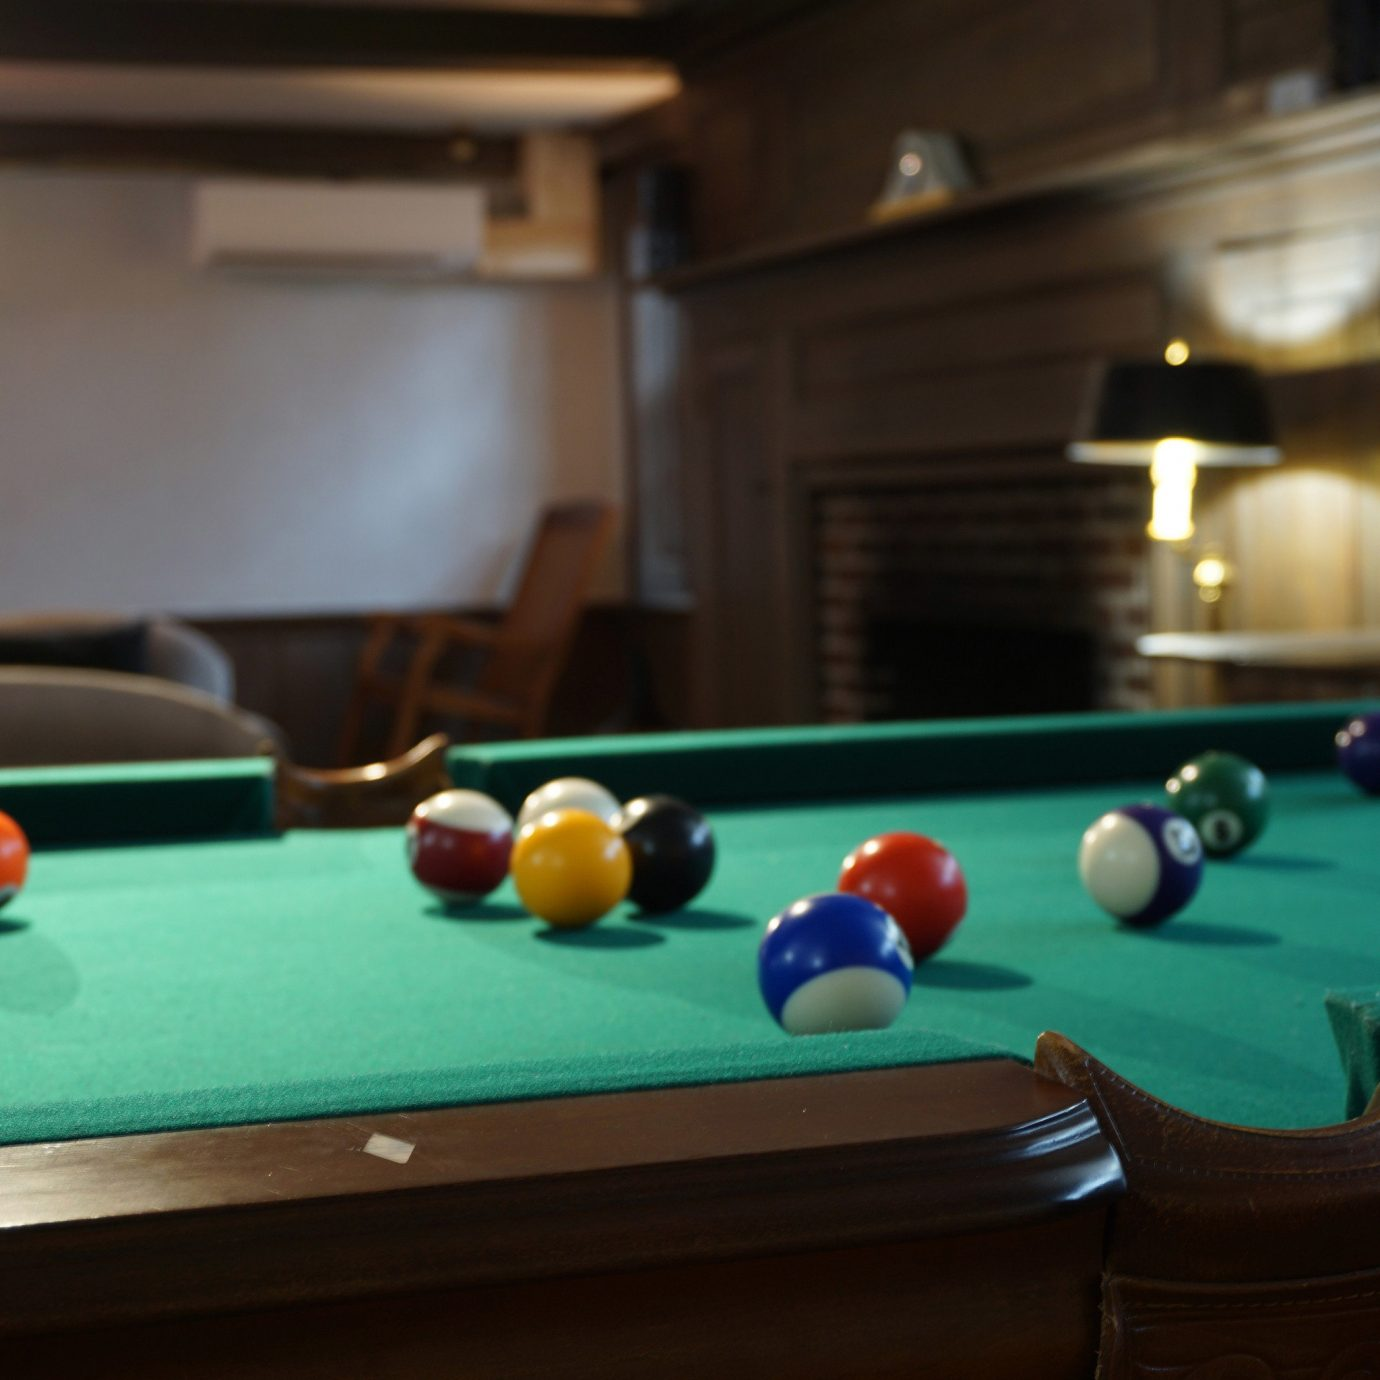 pool table pool ball poolroom Pool cue sports billiard room english billiards recreation room pocket billiards carom billiards games billiard table sports indoor games and sports gambling house scene recreation individual sports snooker cue stick nine ball